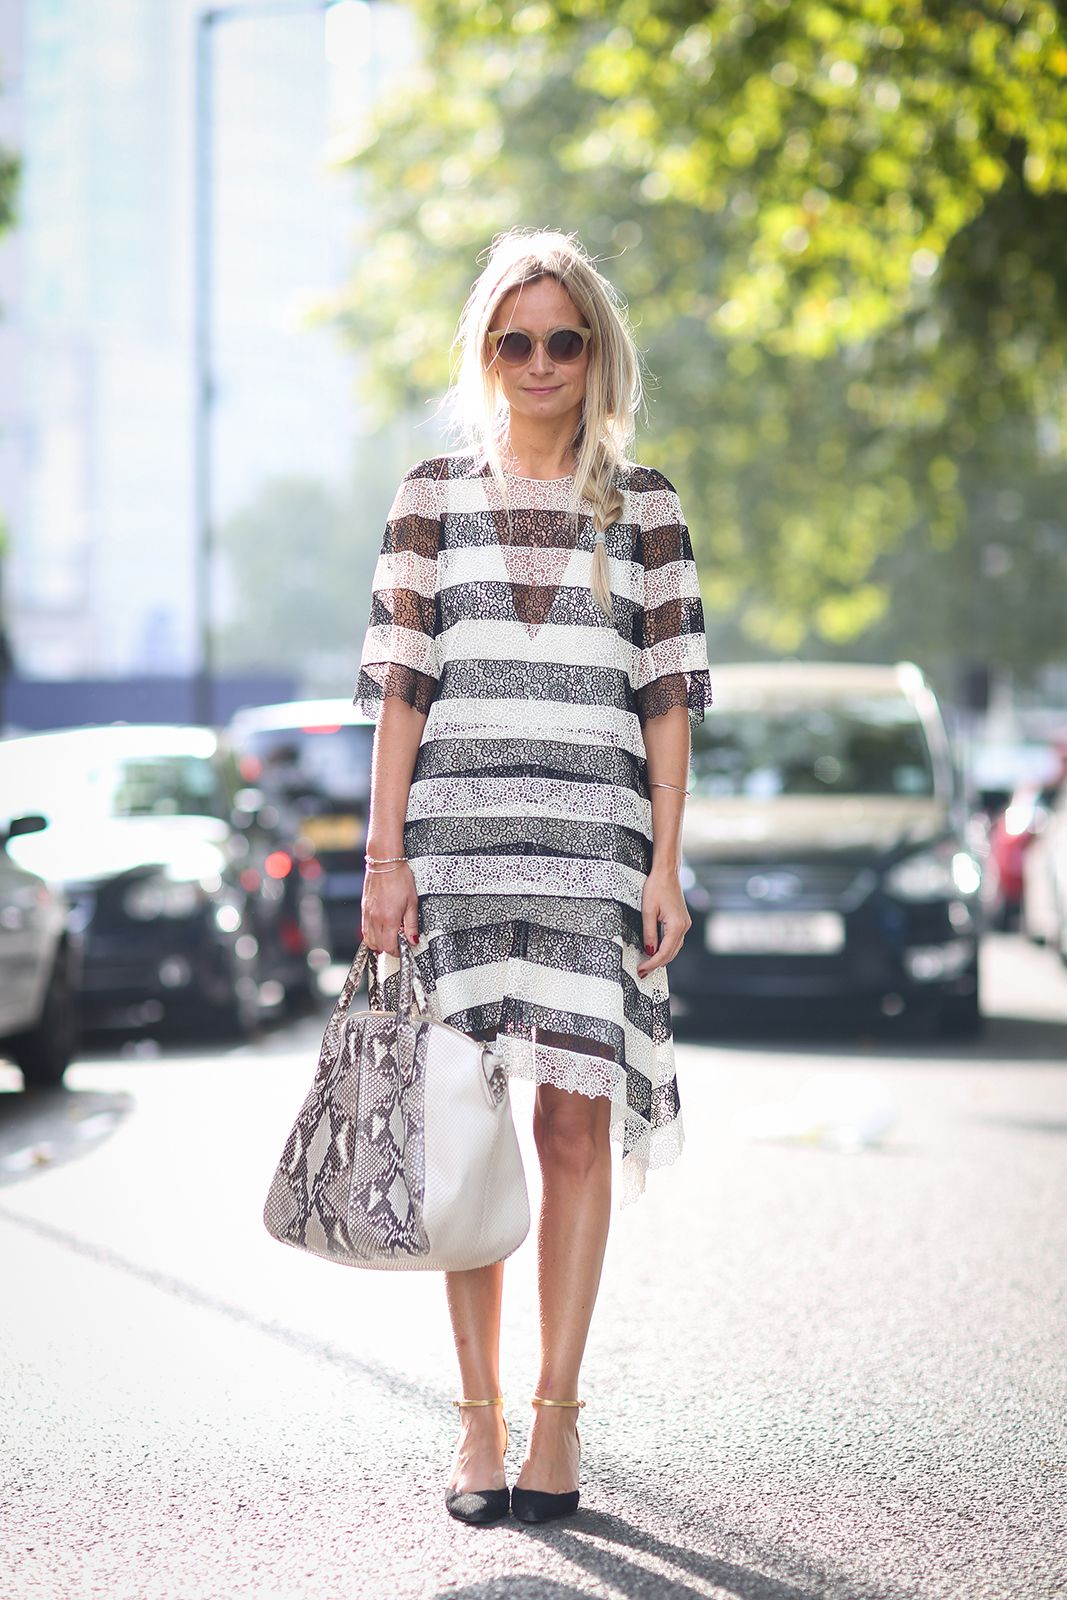 The BEST street style outfits spotted in London this week